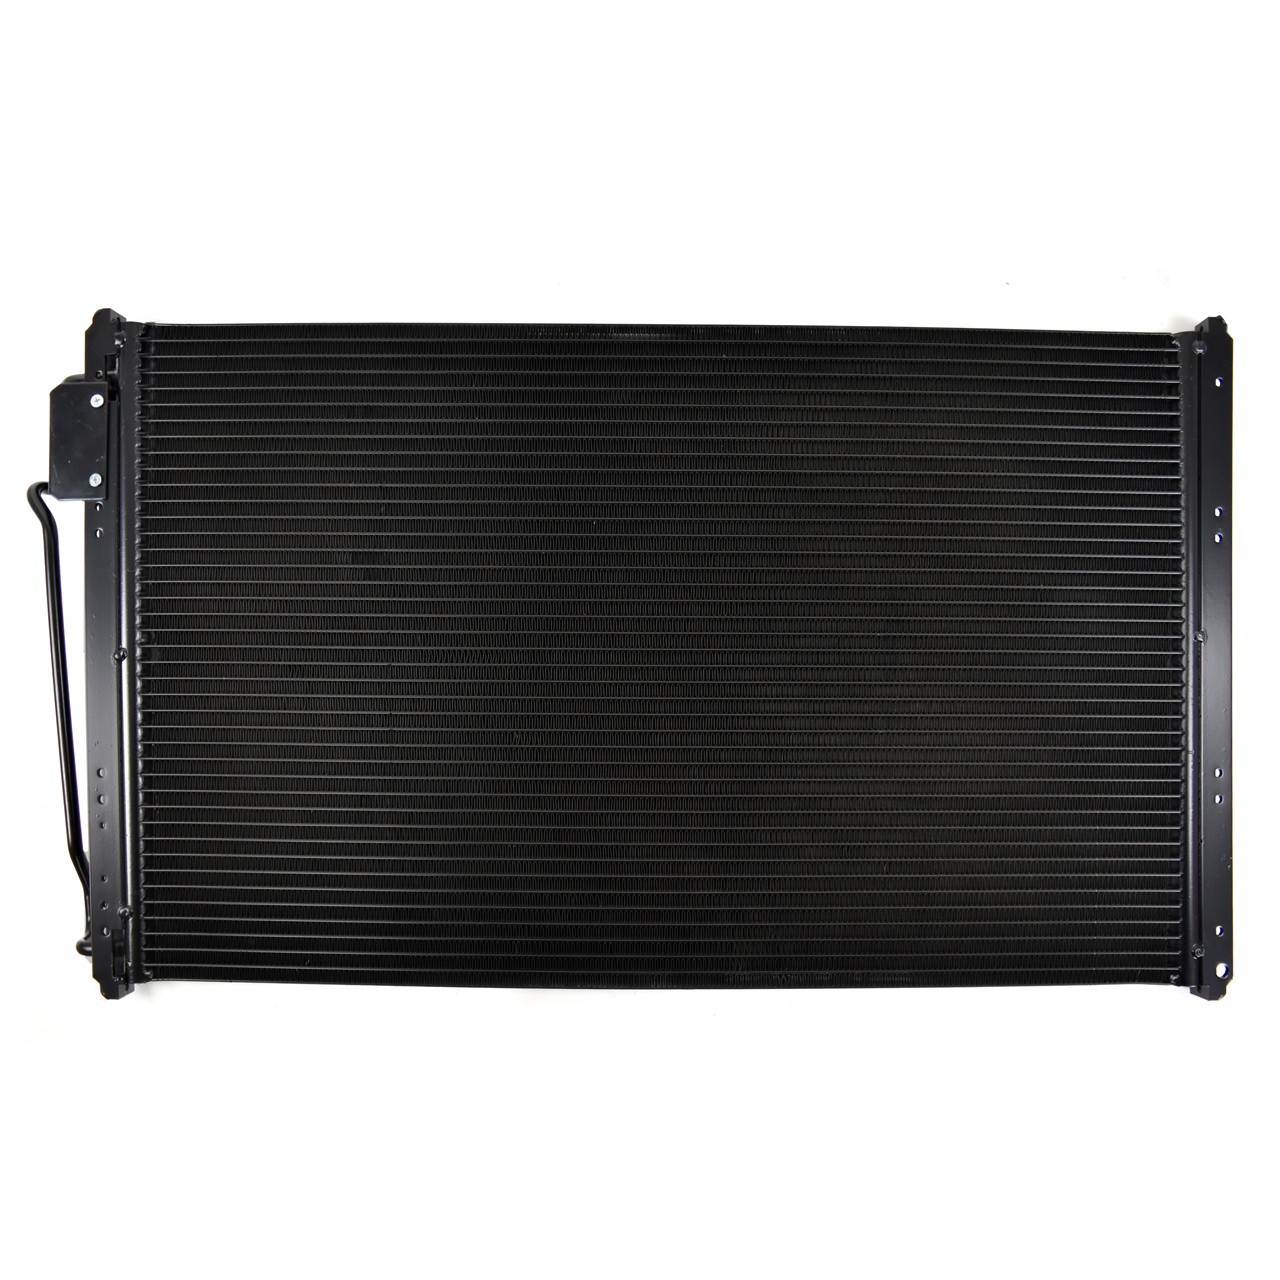 A/C Air Conditioning Condenser for V6 or V8 [FM-ACC10]